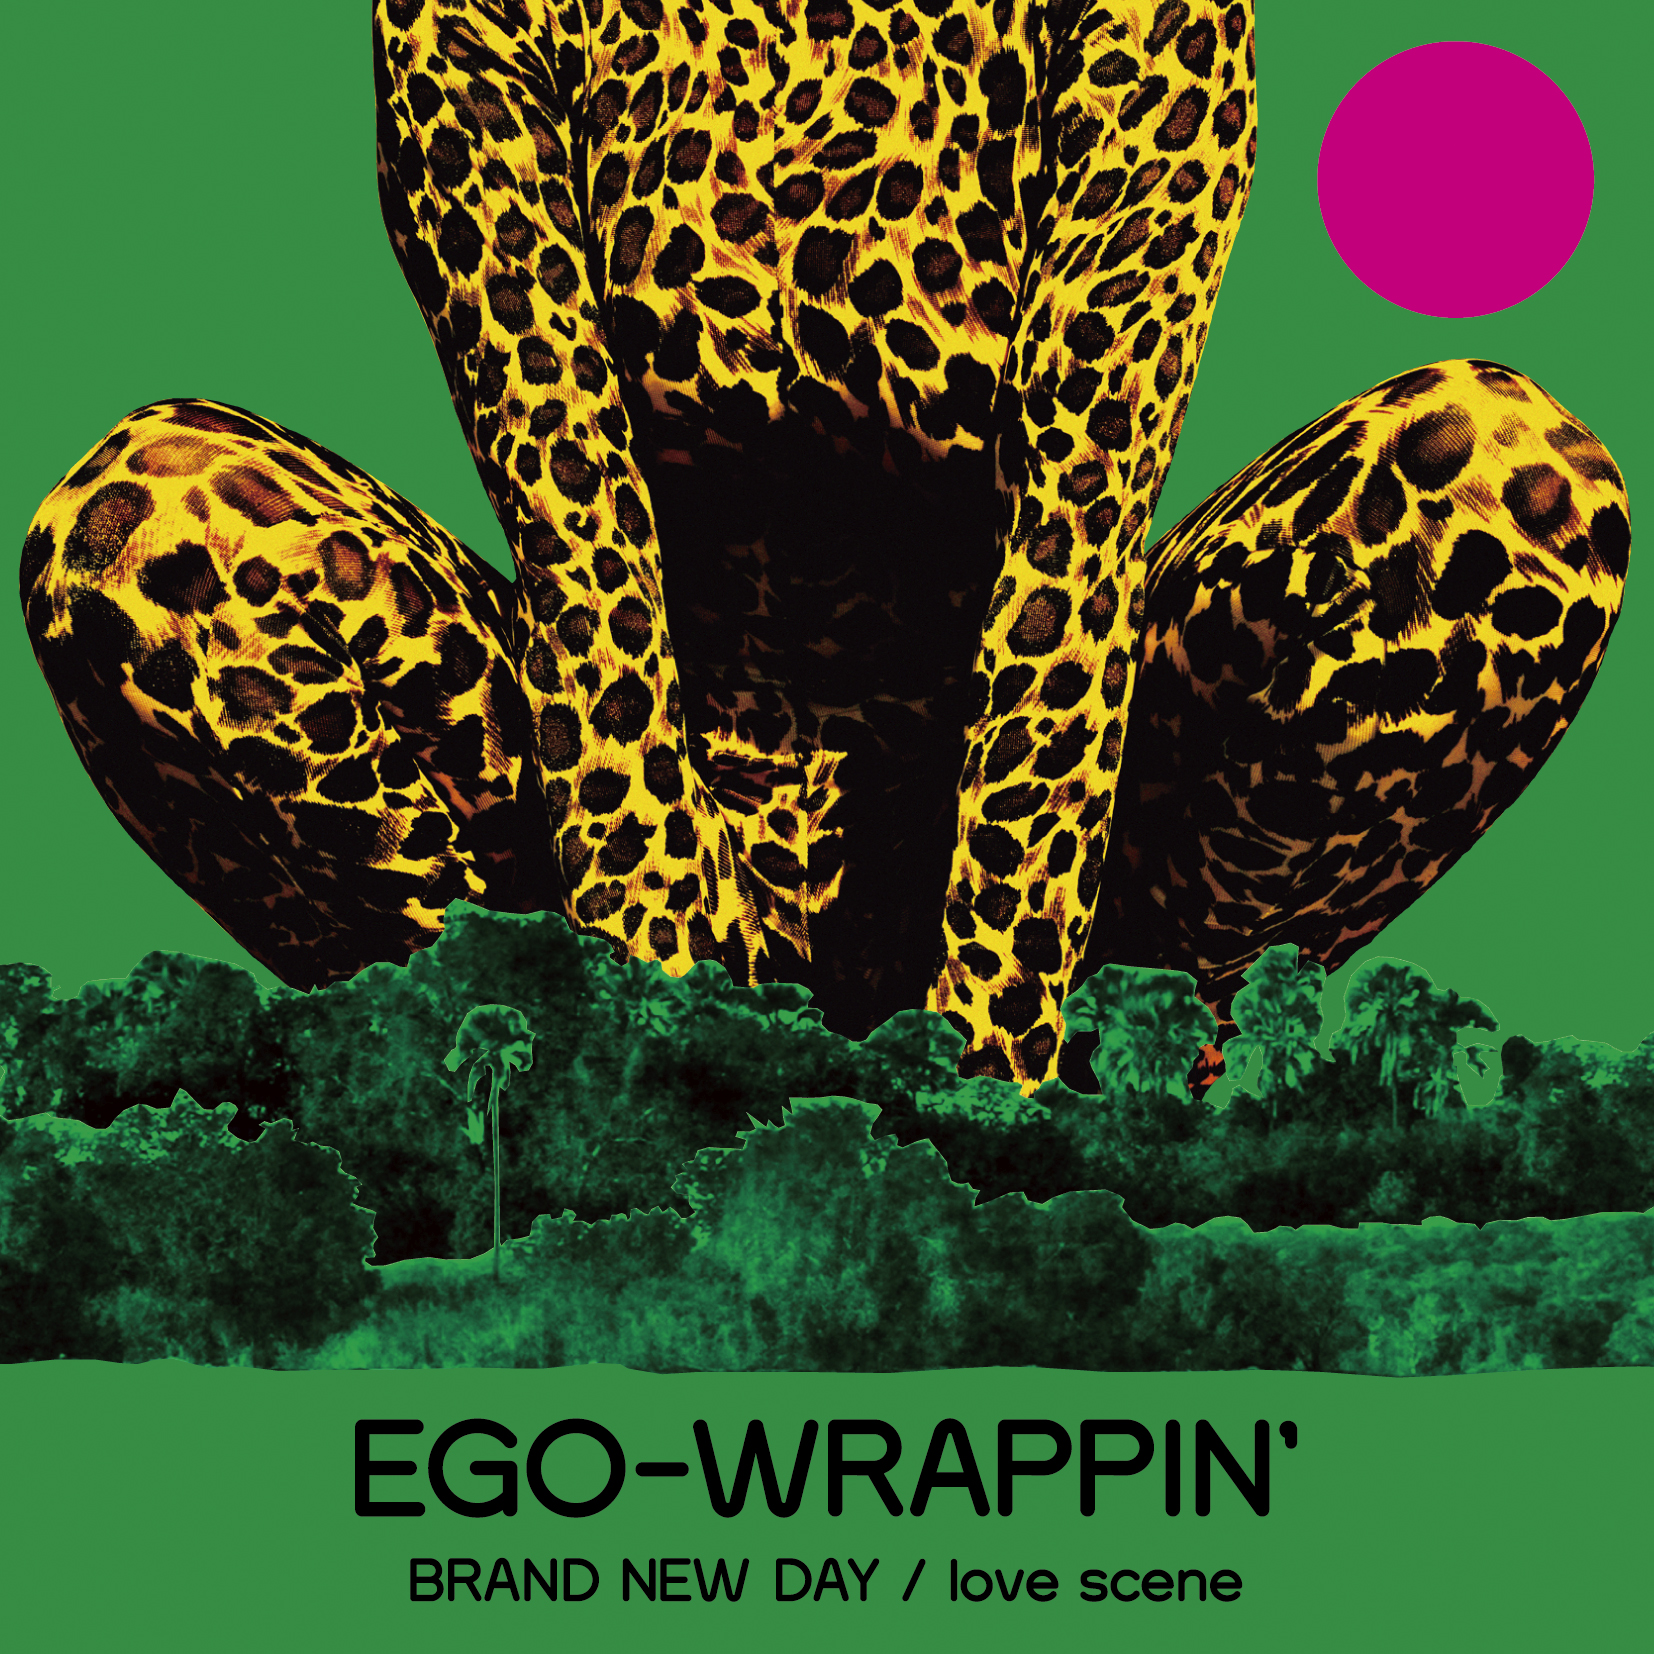 EGO-WRAPPIN' 「BRAND NEW DAY / love scene」